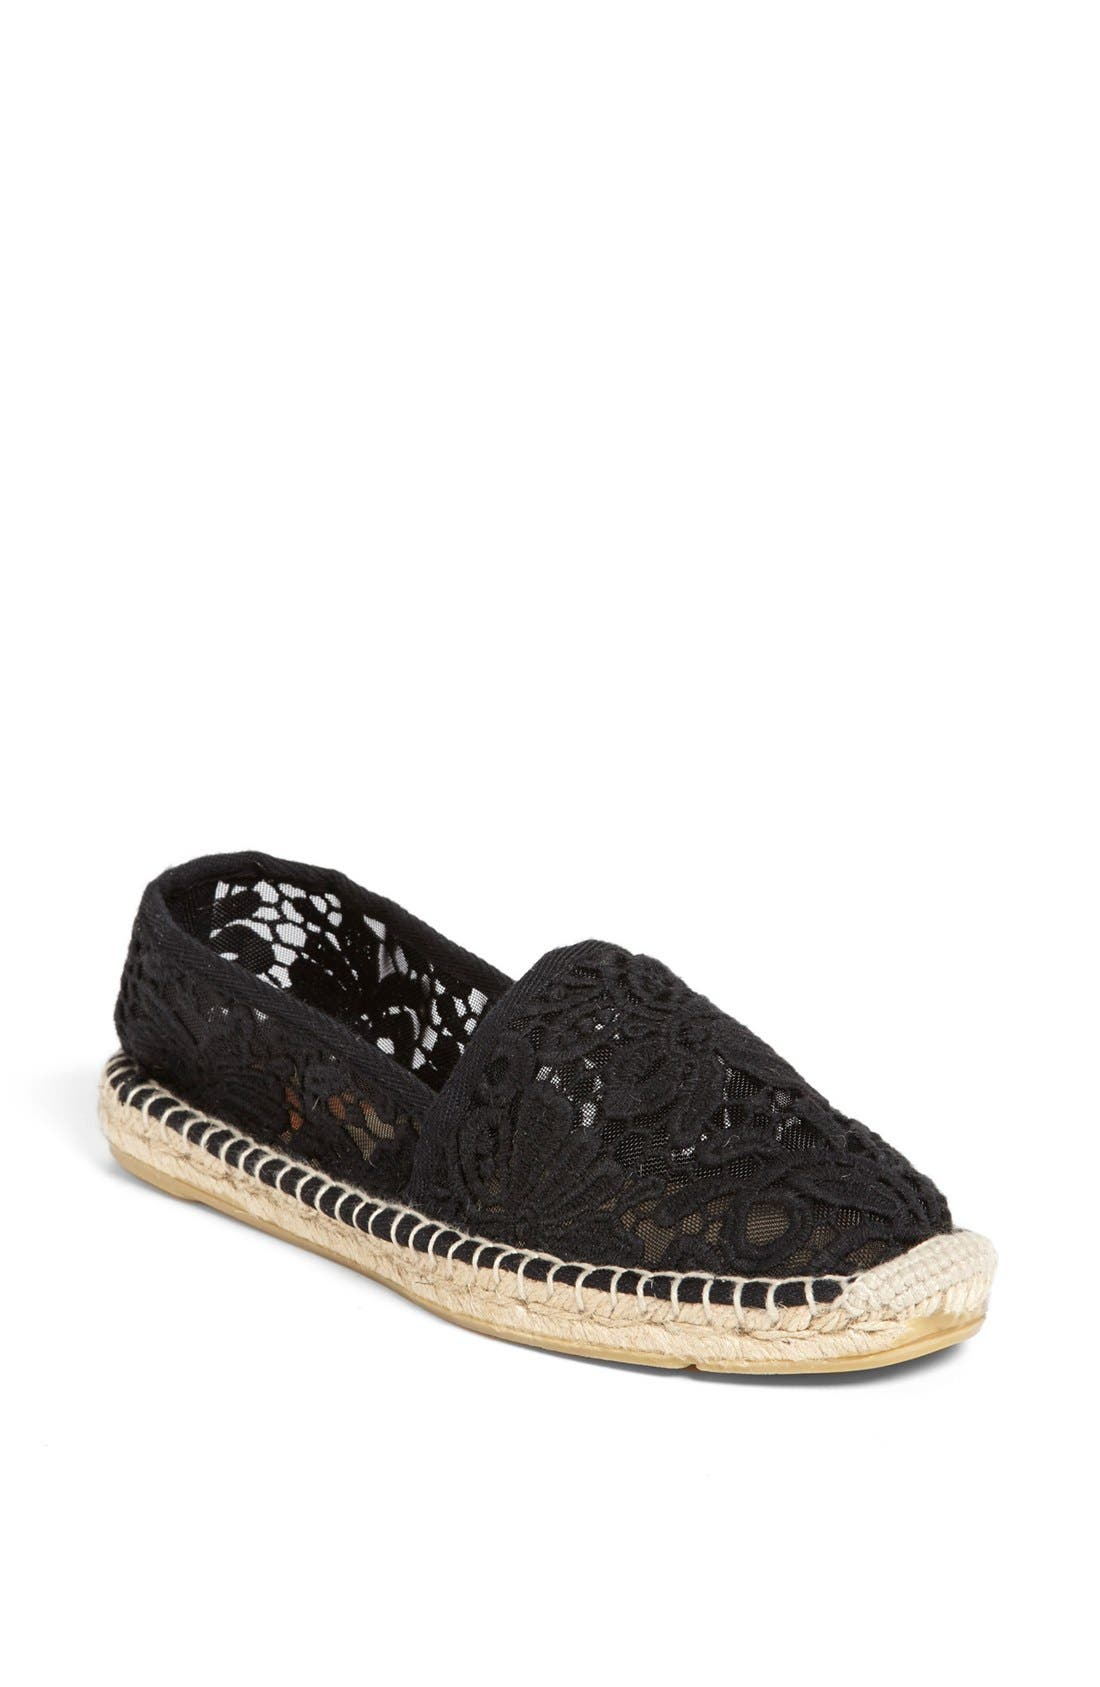 TORY BURCH,                             'Abbe' Espadrille,                             Main thumbnail 1, color,                             001